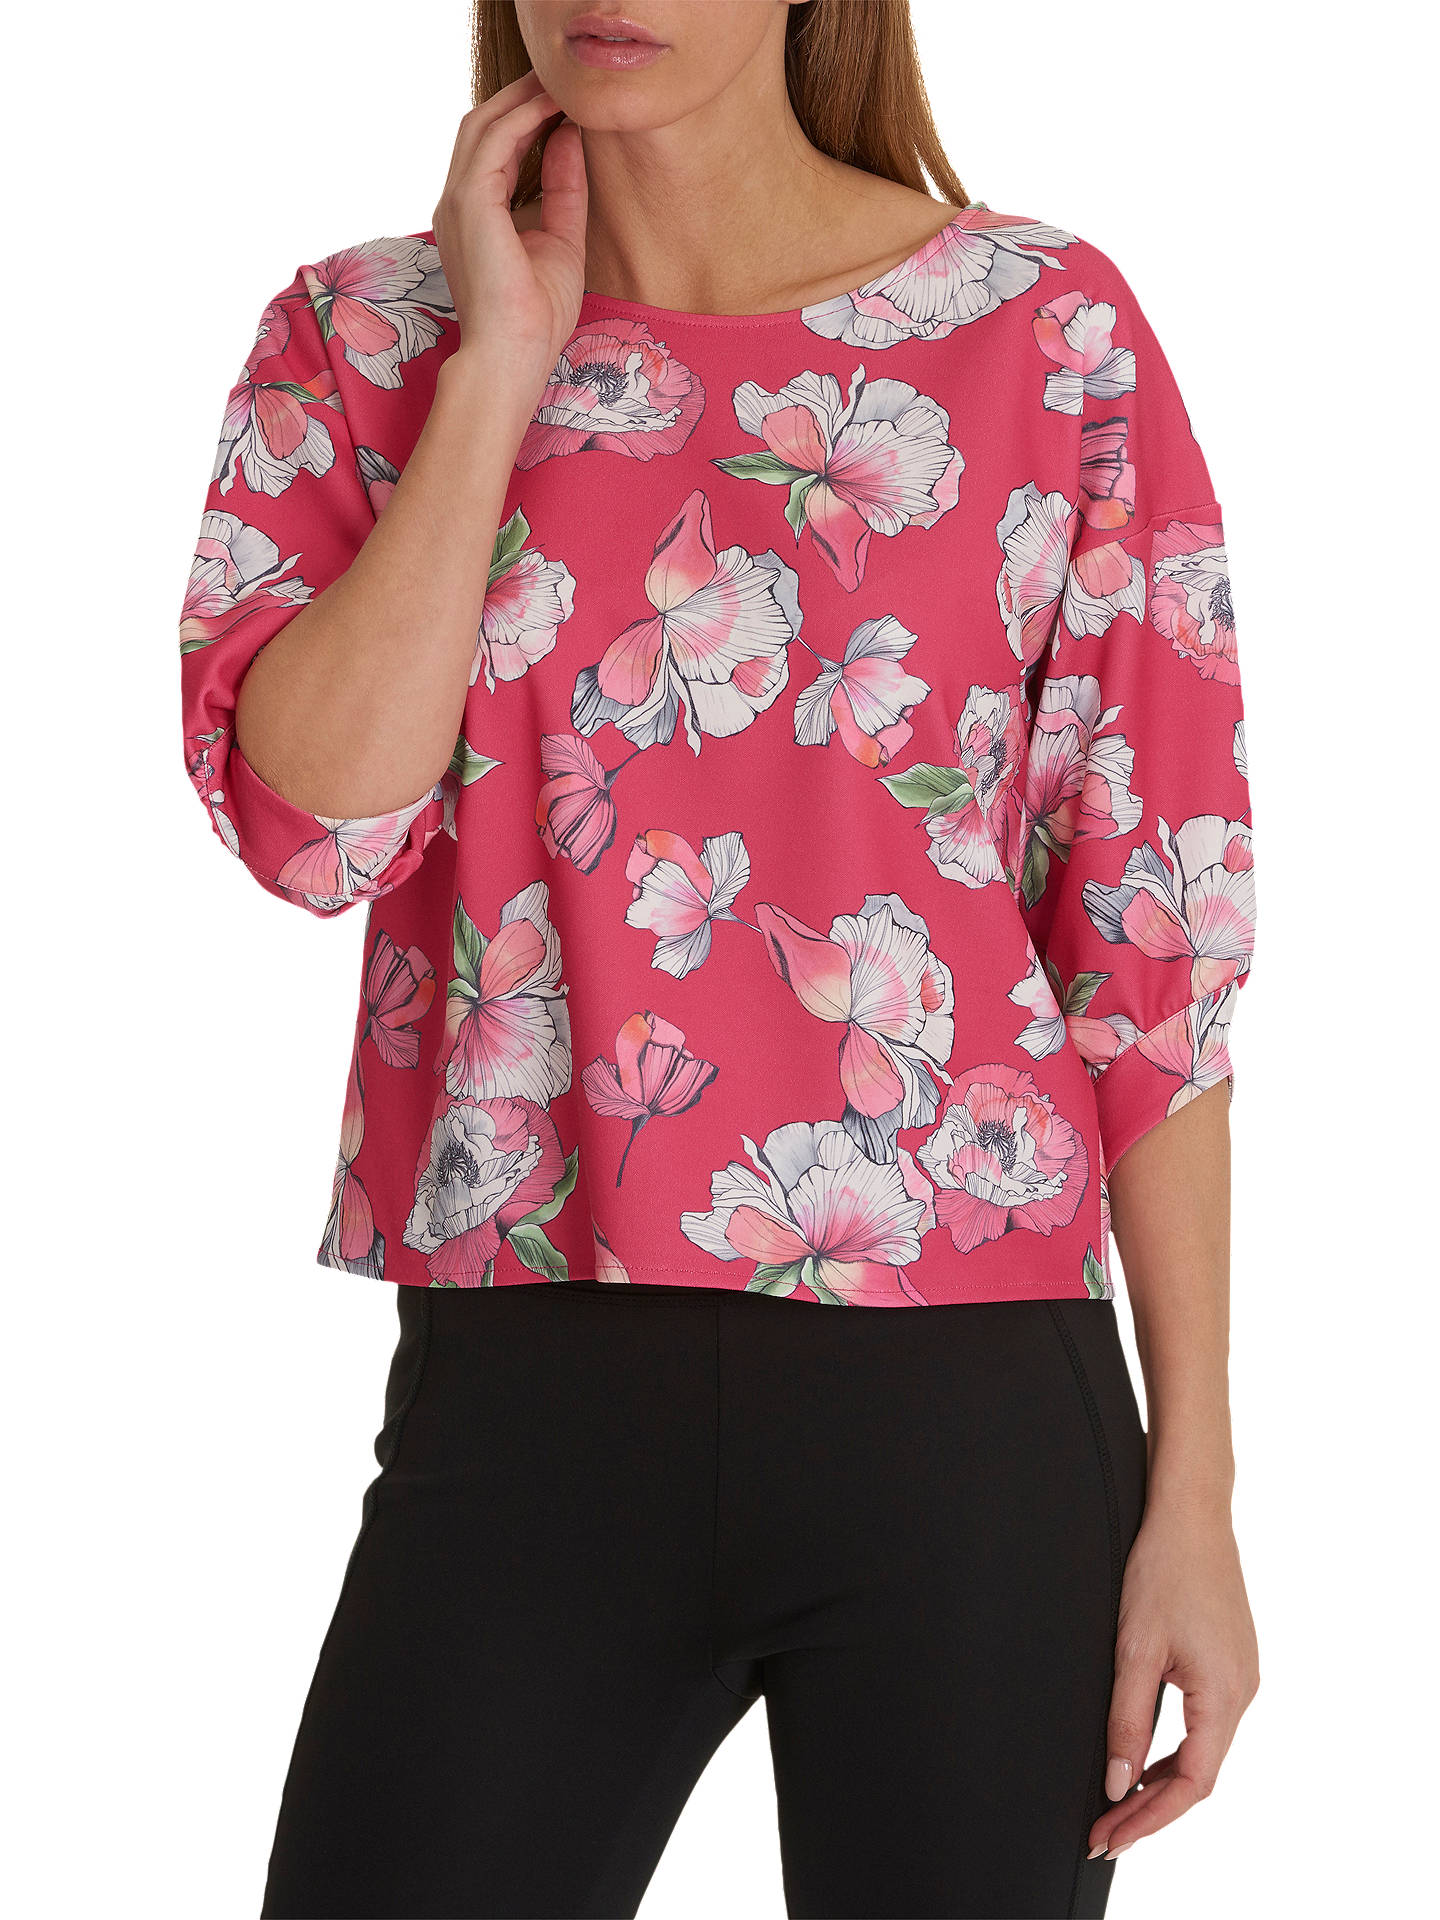 BuyBetty & Co. Floral Print Top, Dark Pink, 10 Online at johnlewis.com